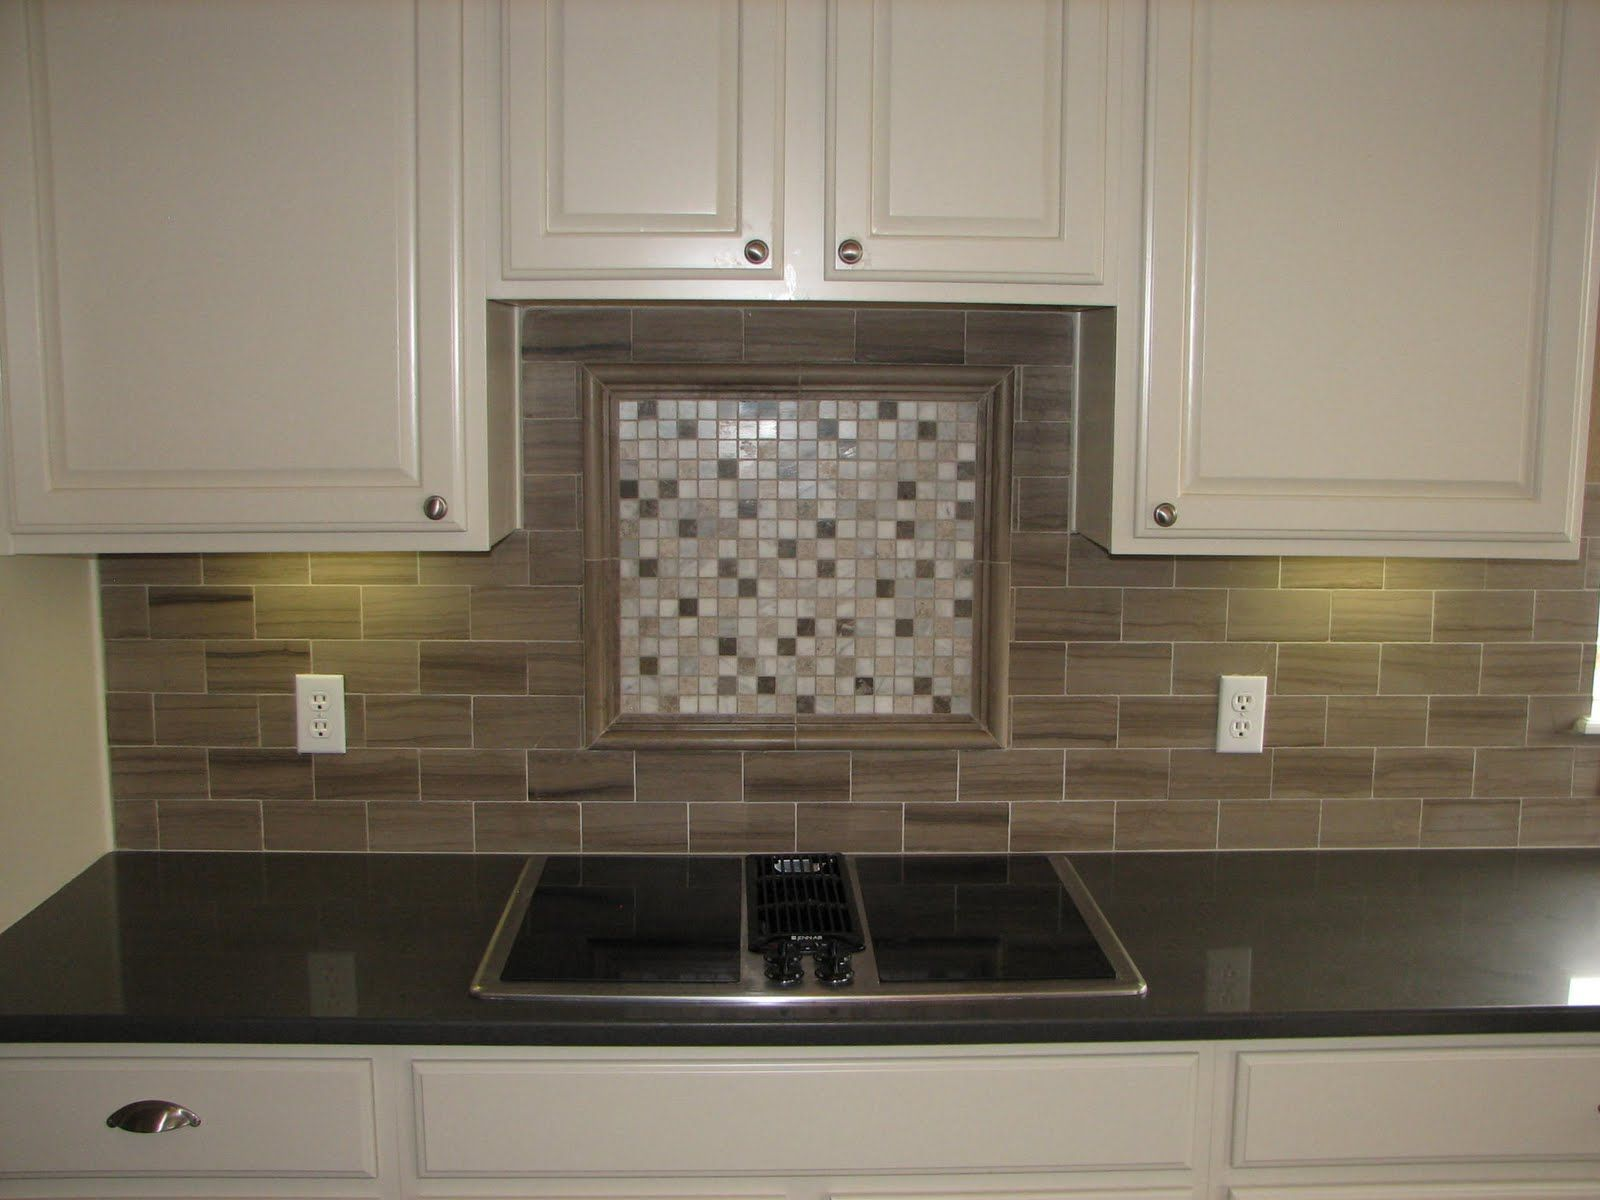 Tile backsplash with black cuntertop ideas tile Mosaic kitchen wall tiles ideas